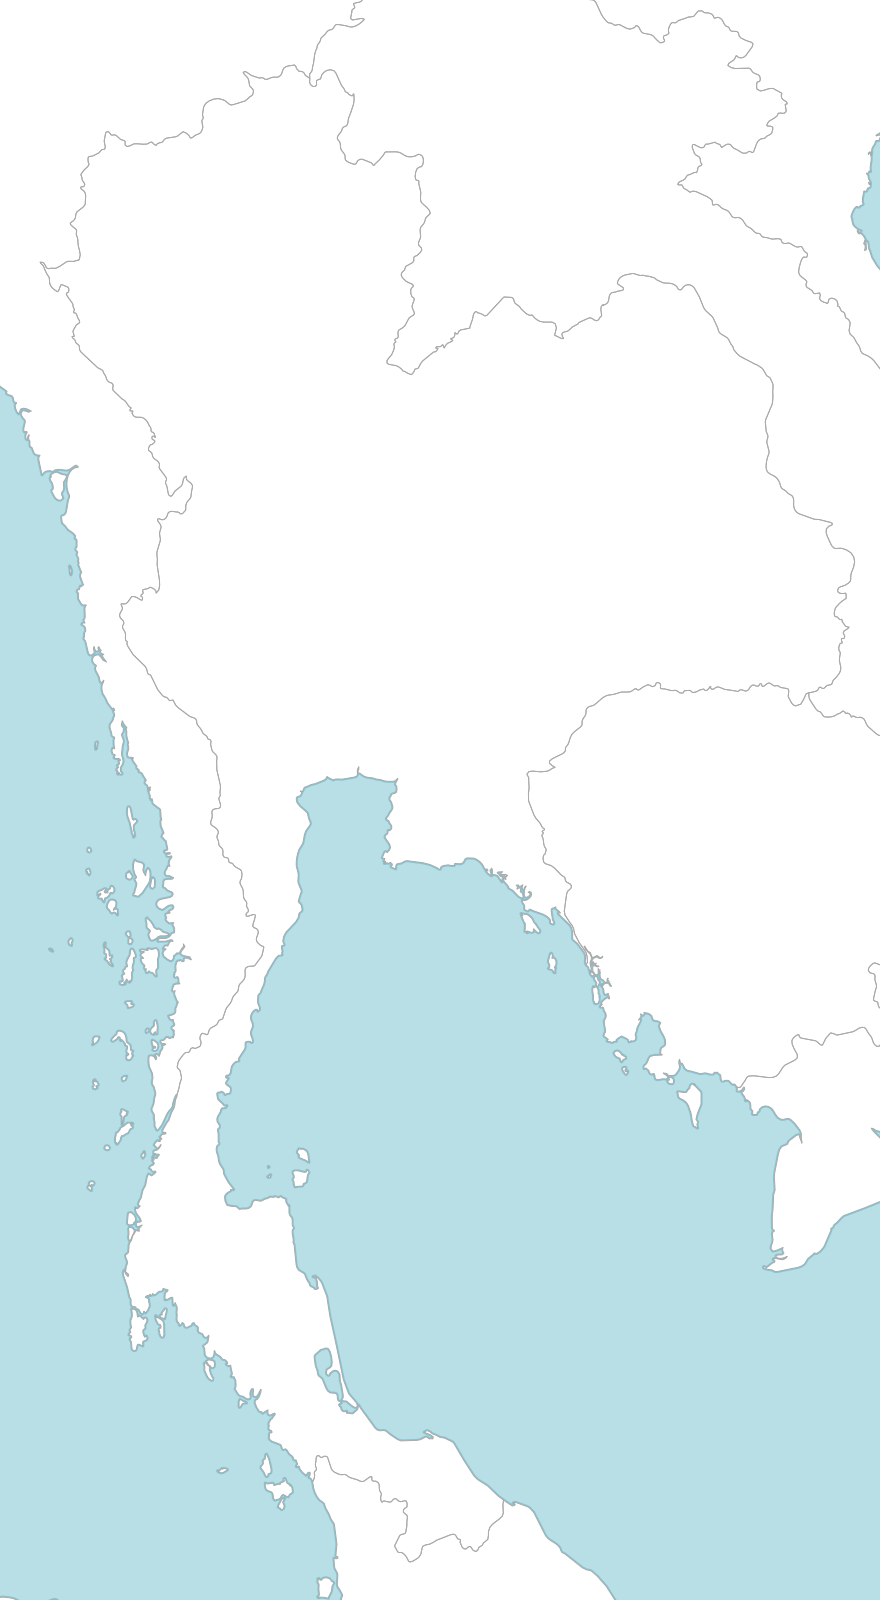 6 free maps of Thailand - ASEAN UP